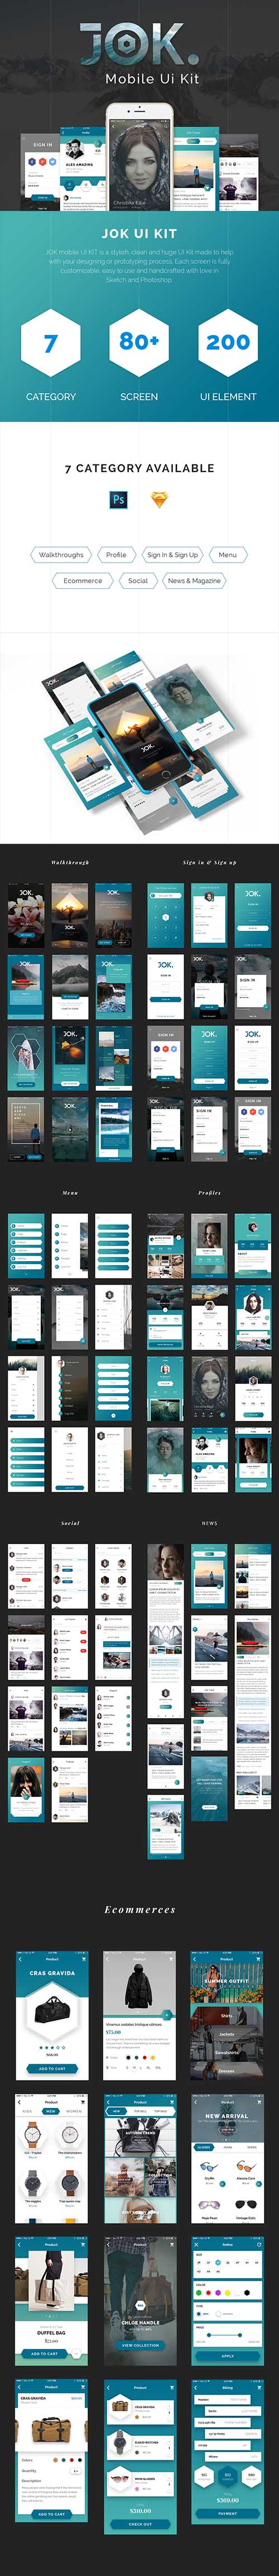 JOK Mobile UI Kit - Stylish & trendy iOS UI Kit for Sketch & Photoshop